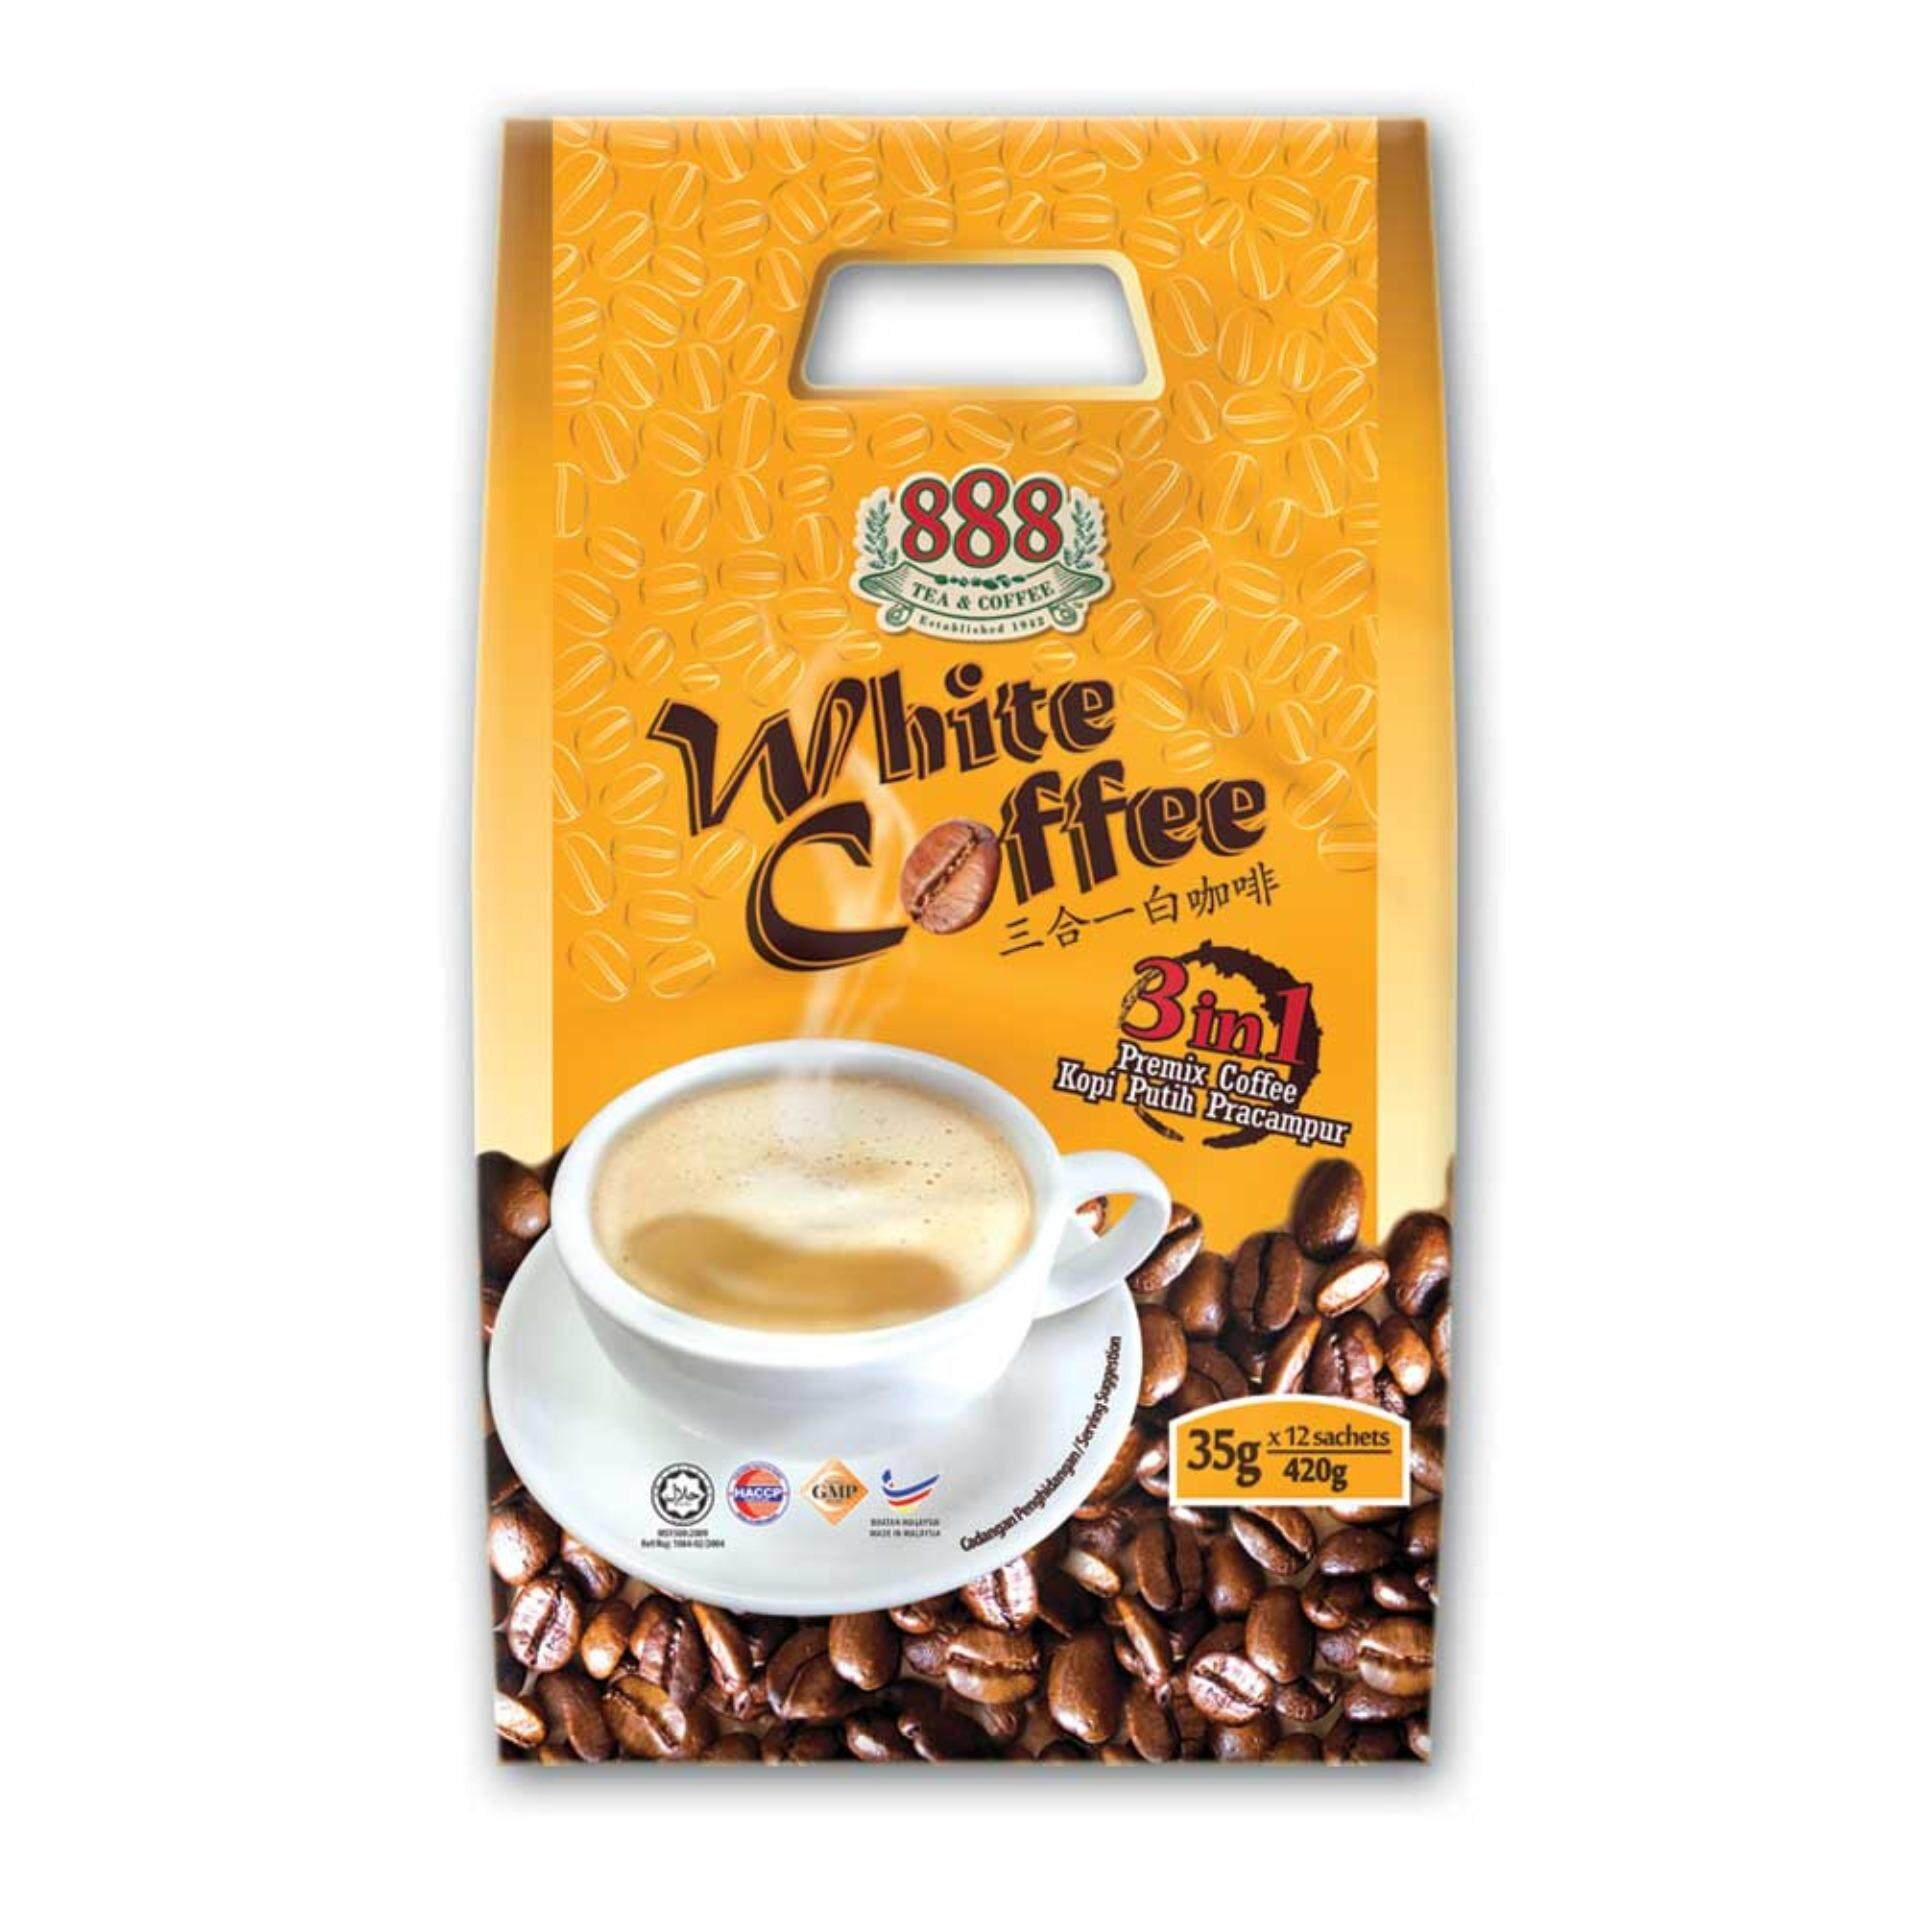 888 3 In 1 Instant White Coffee (35g x 12 Sachets)